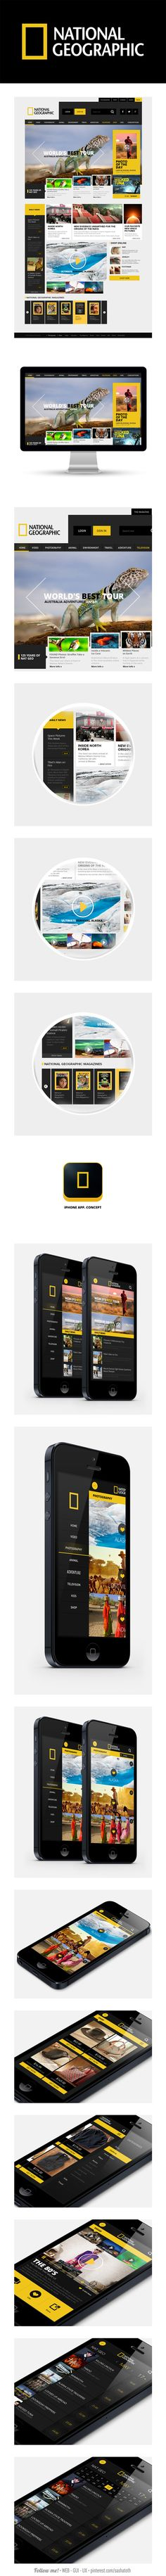 National Geographic Redesign web and iphone app re-design by Enes Danış